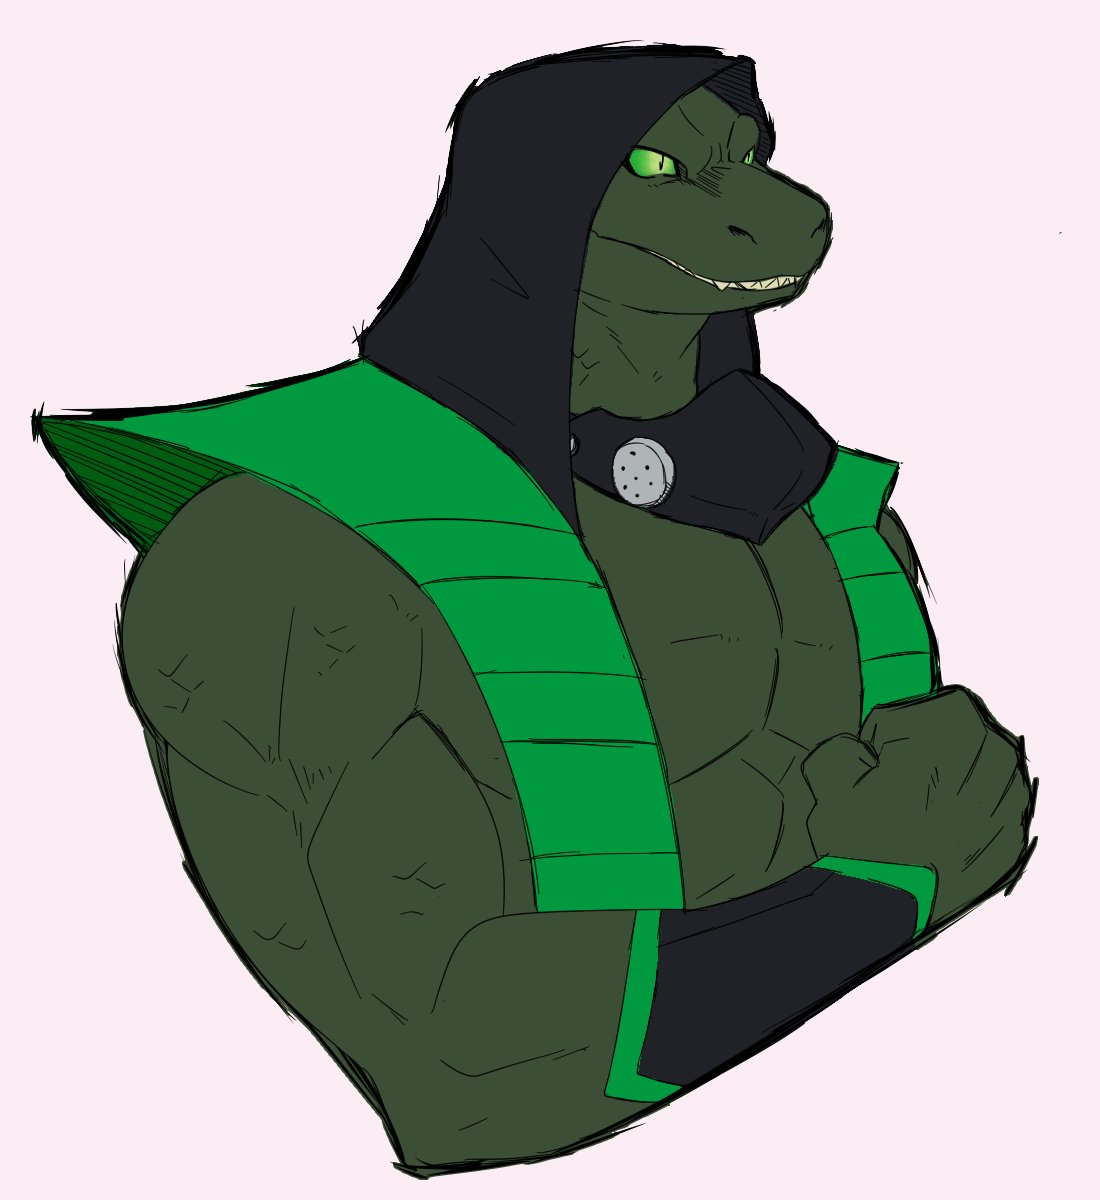 #interpvscanon I may be a little late for this one.  Reptile.  (retweet to scare a MK fan)